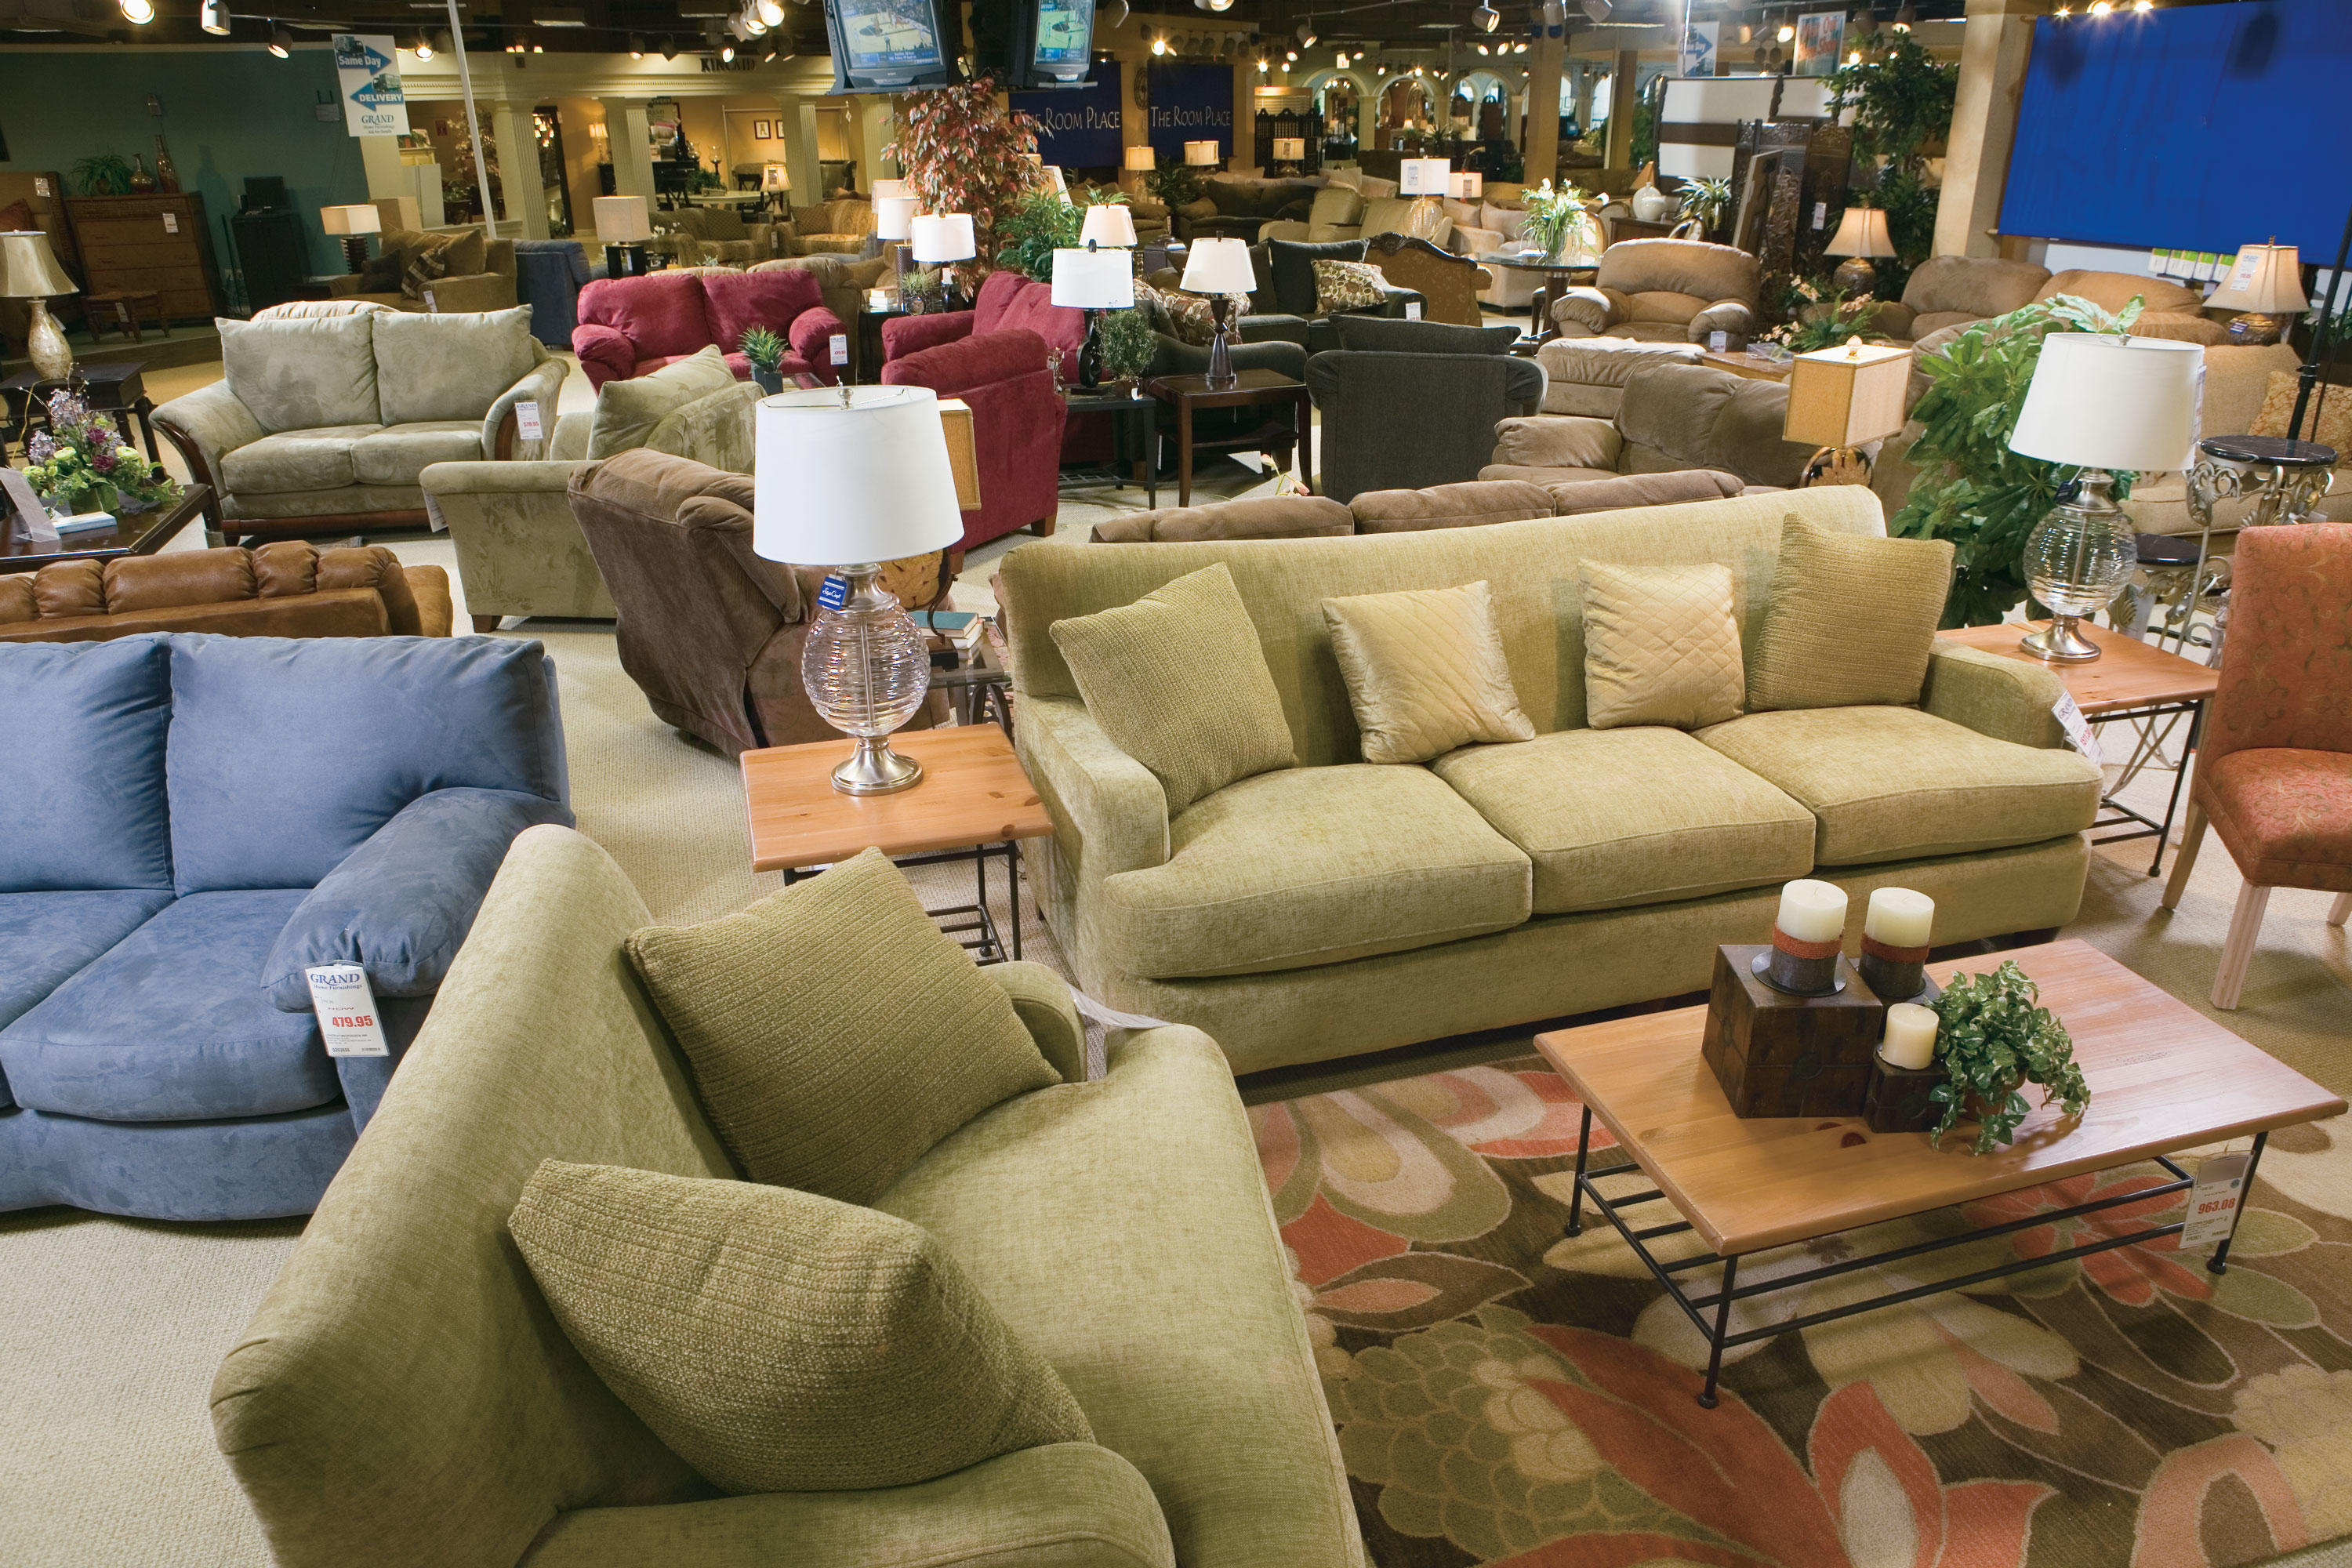 Grand Home Furnishings Superstore Coupons Near Me In Princeton 8coupons